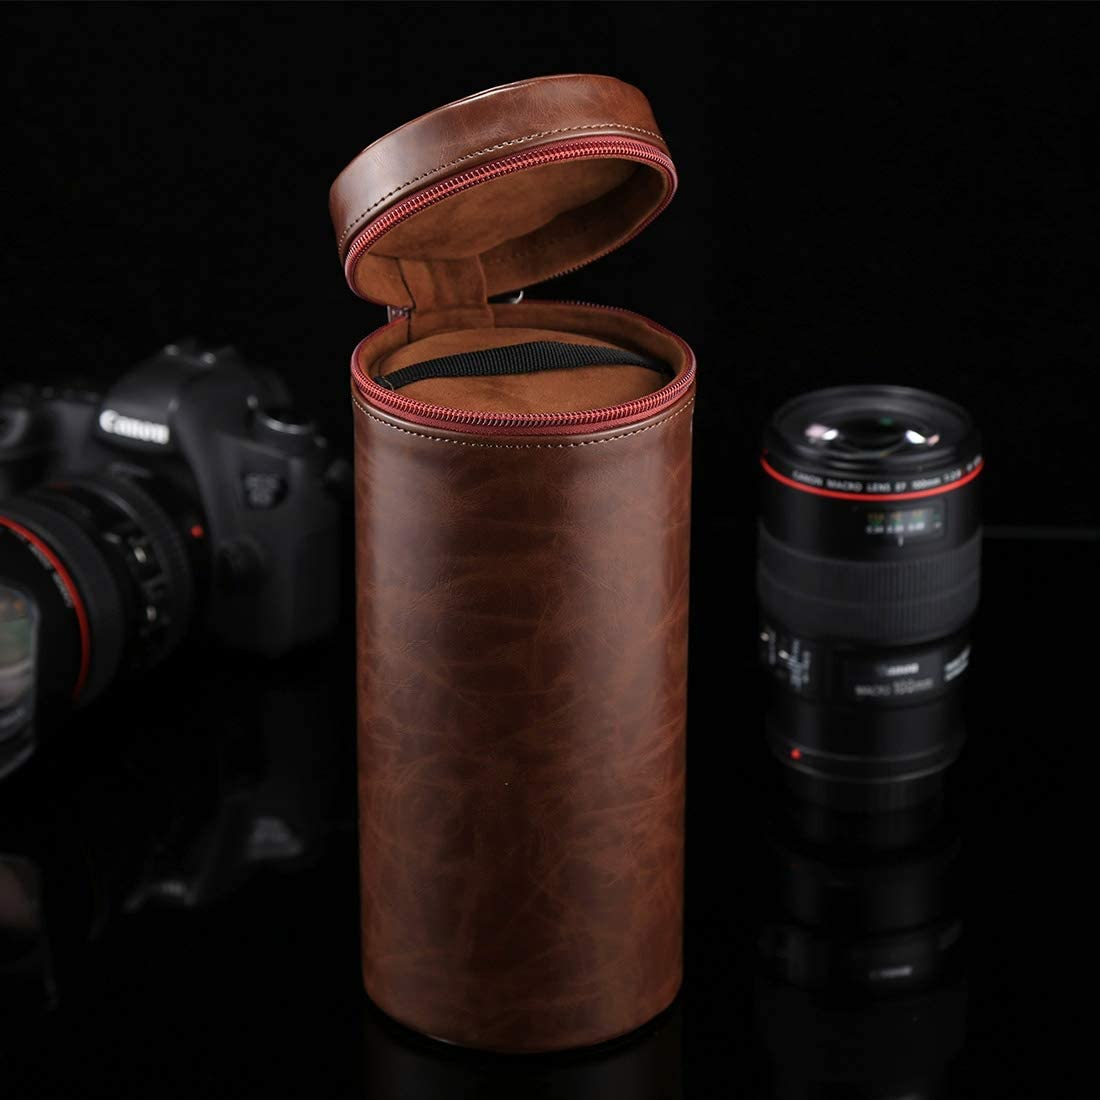 Size: 24.510.510.5cm Color : Coffee JINYANG JINYANG Bag Extra Large Lens Case Zippered PU Leather Pouch Box for DSLR Camera Lens Black